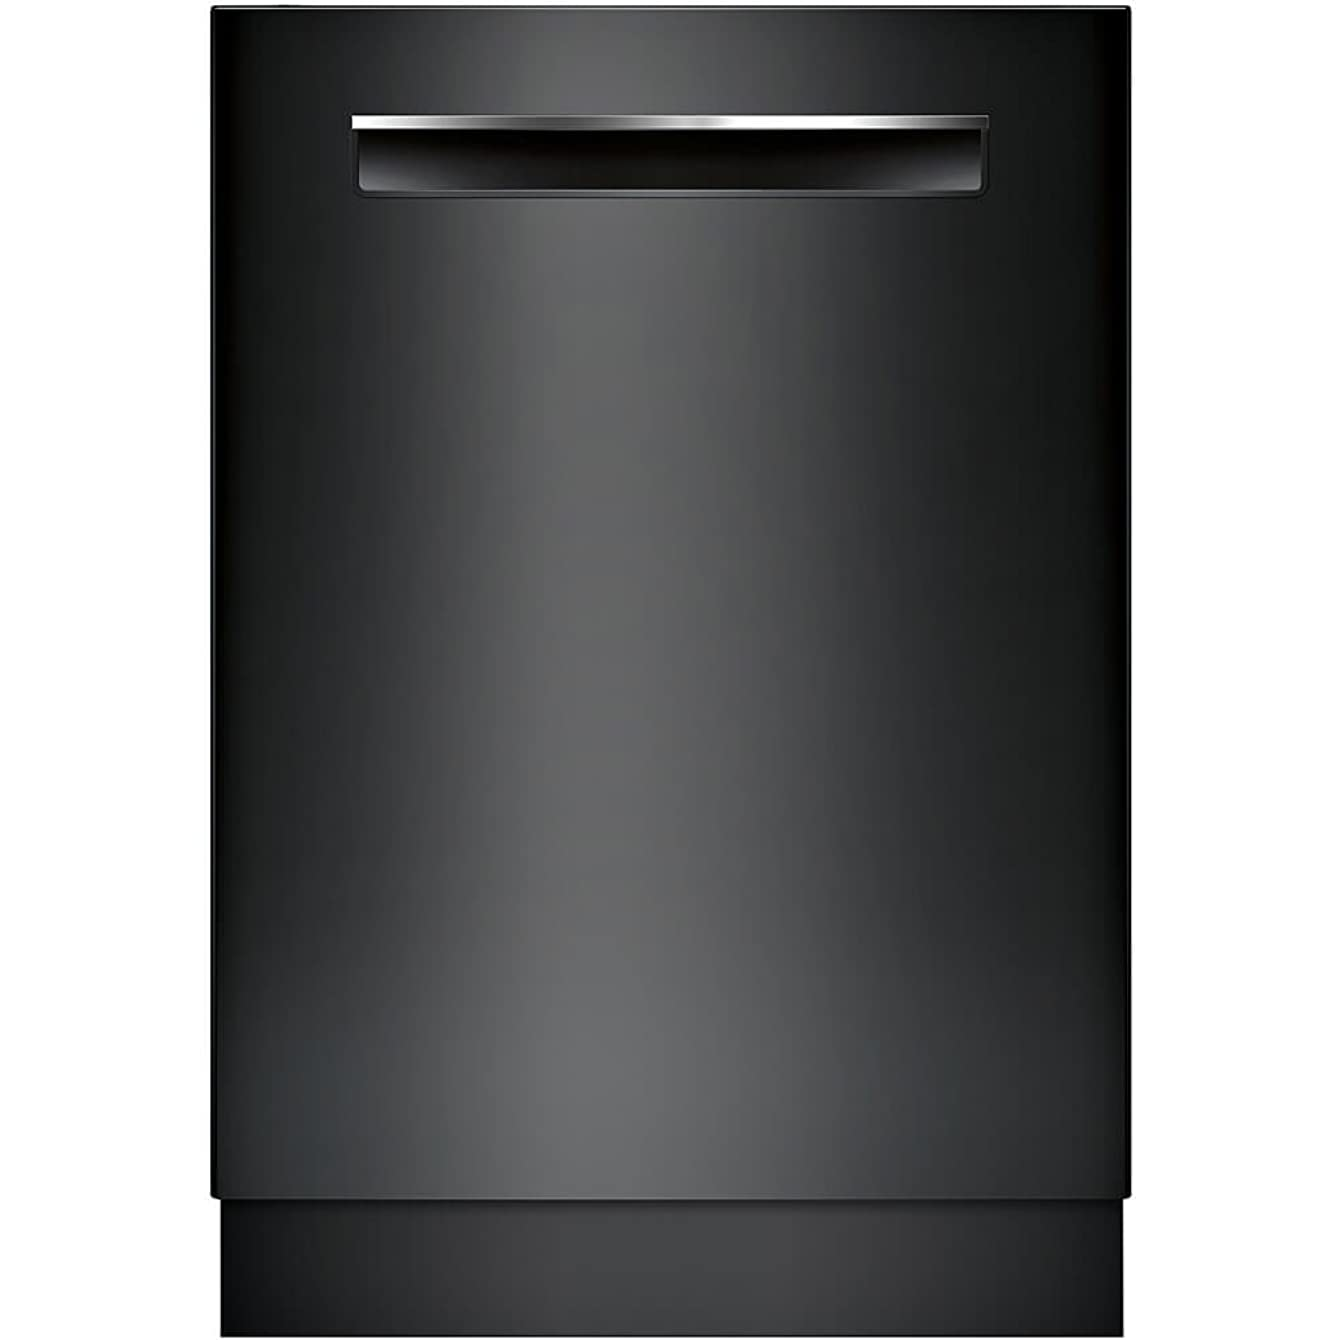 Bosch 800 Series 24 Inch Built In Fully Integrated Dishwasher with 6 Wash Cycles, 16 Place Settings, Soil Sensor, Energy Star Certified, RackMatic, Flexible 3rd Rack, Delay Start in Black